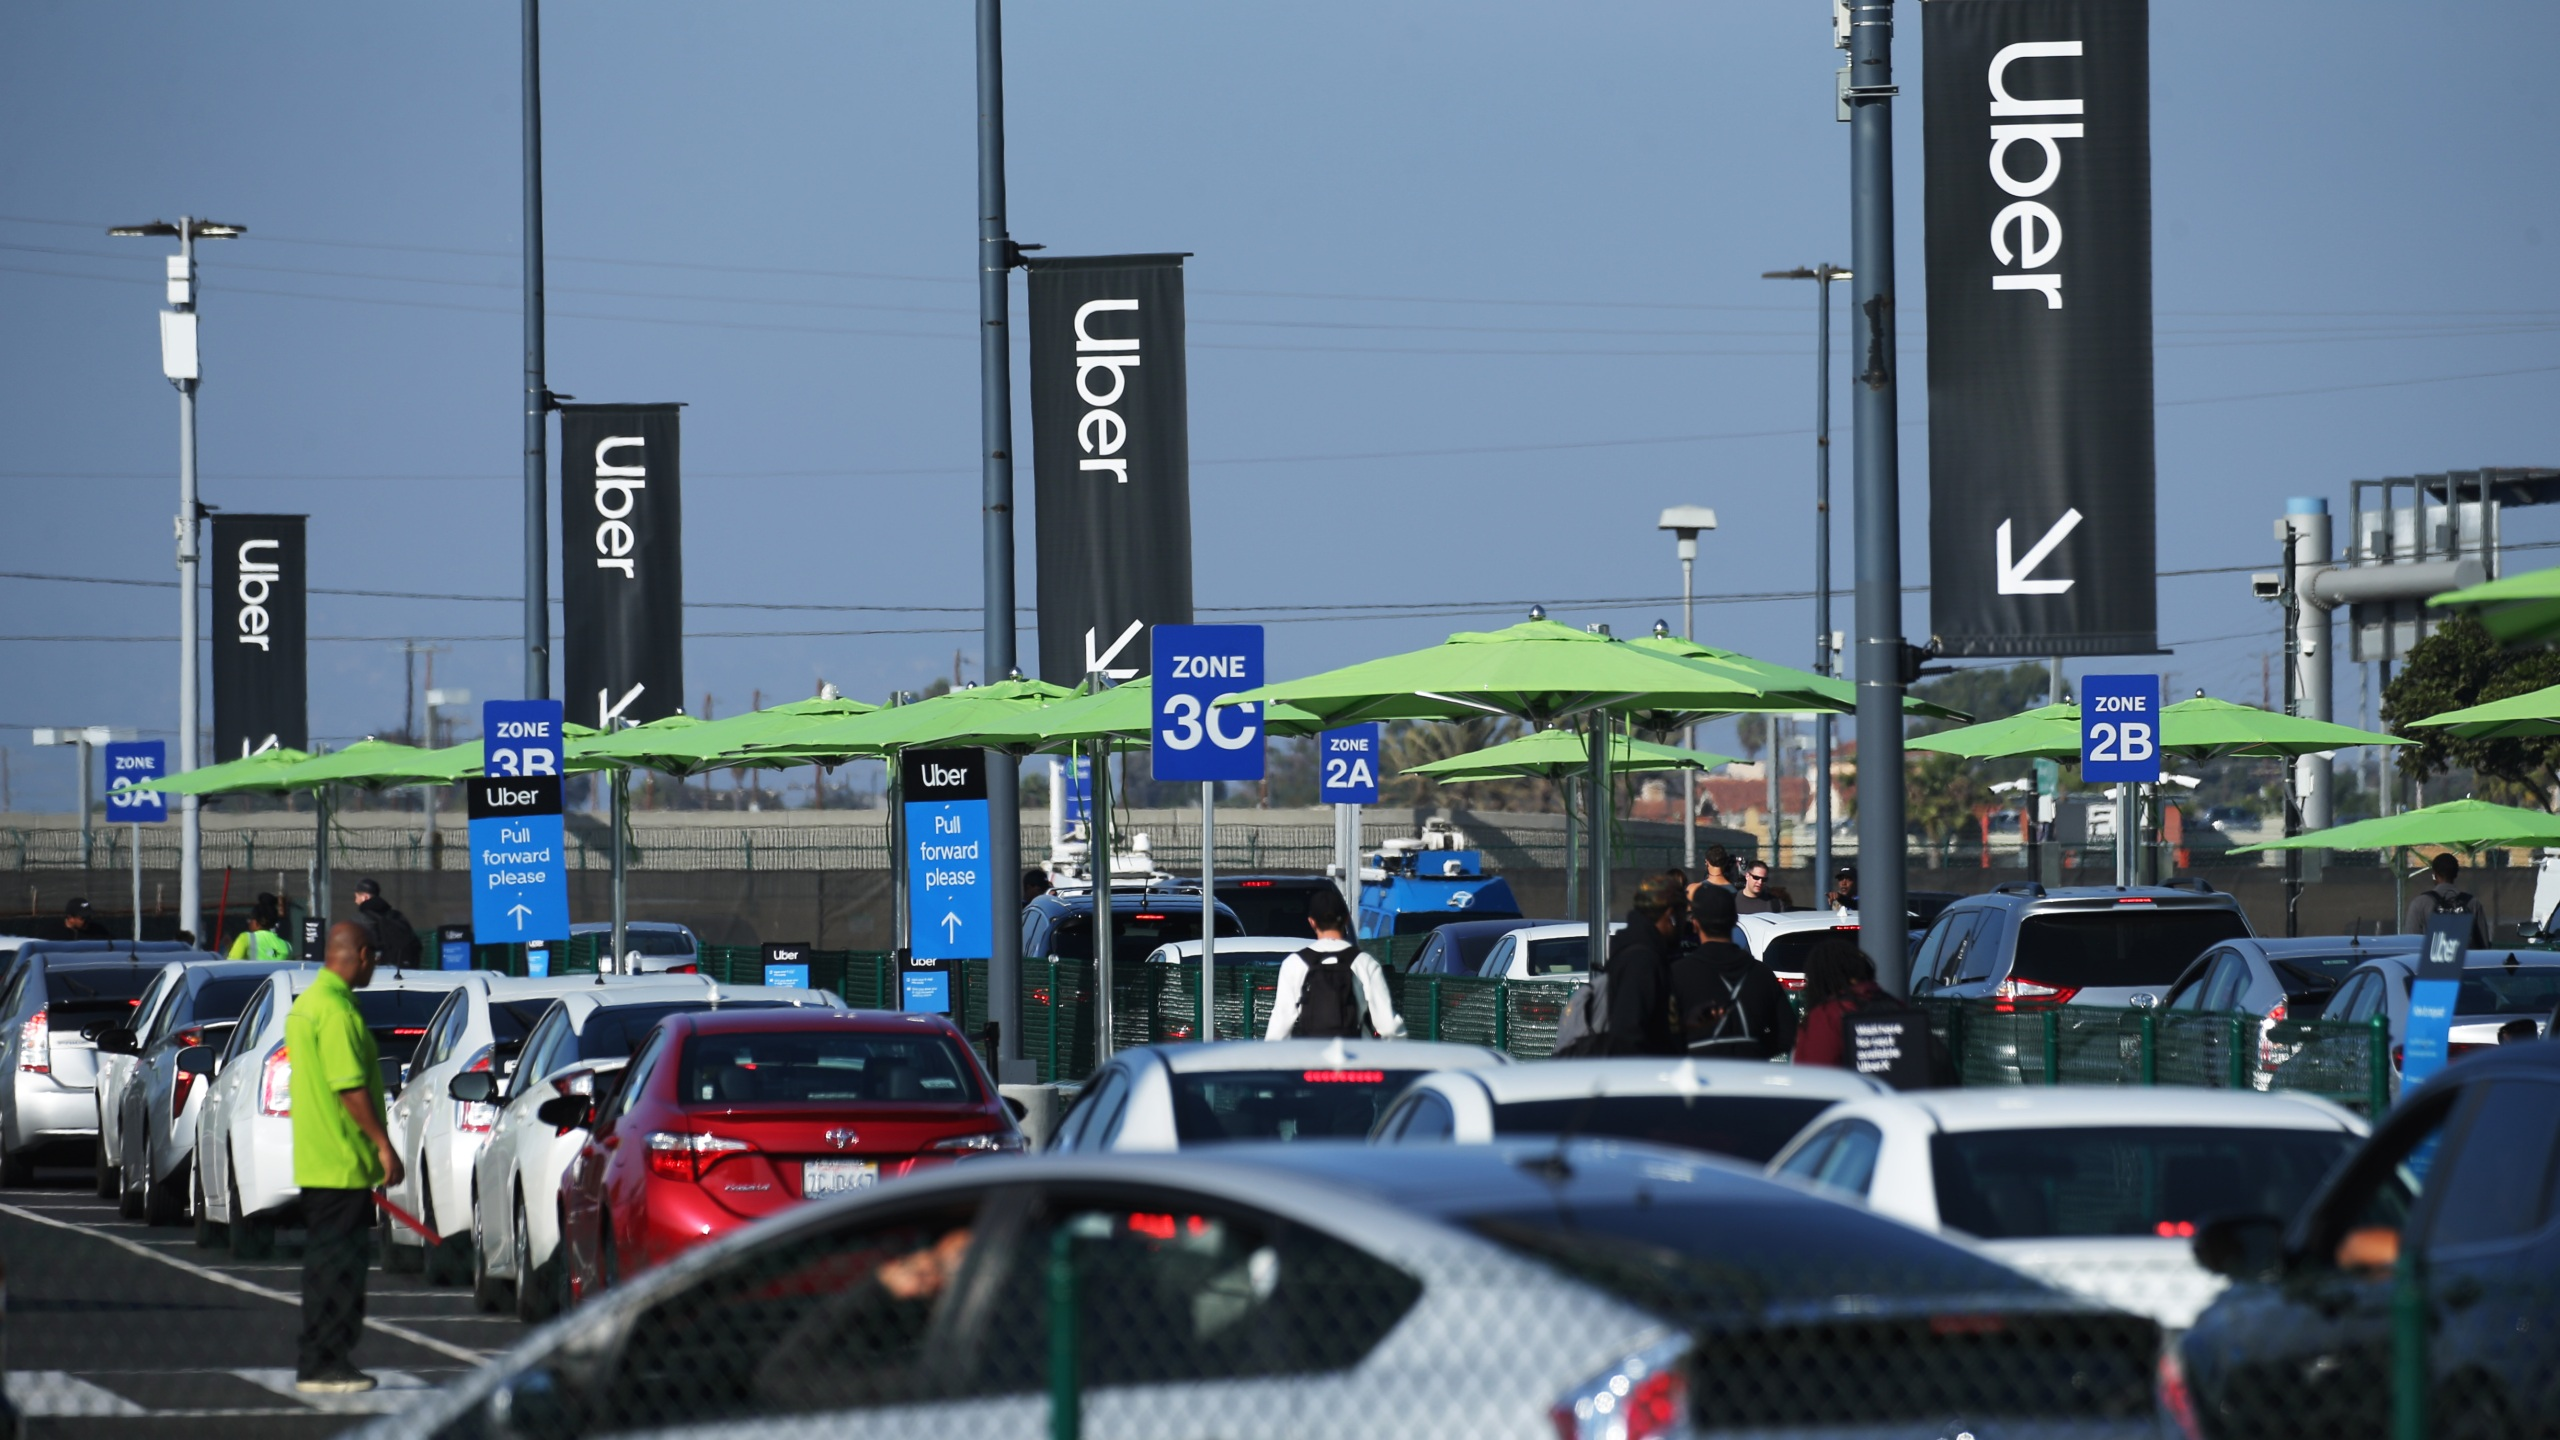 Uber vehicles are lined up at the 'LAX-it' ride-hail passenger pickup lot at Los Angeles International Airport on Nov. 6, 2019 in Los Angeles. (Mario Tama/Getty Images)